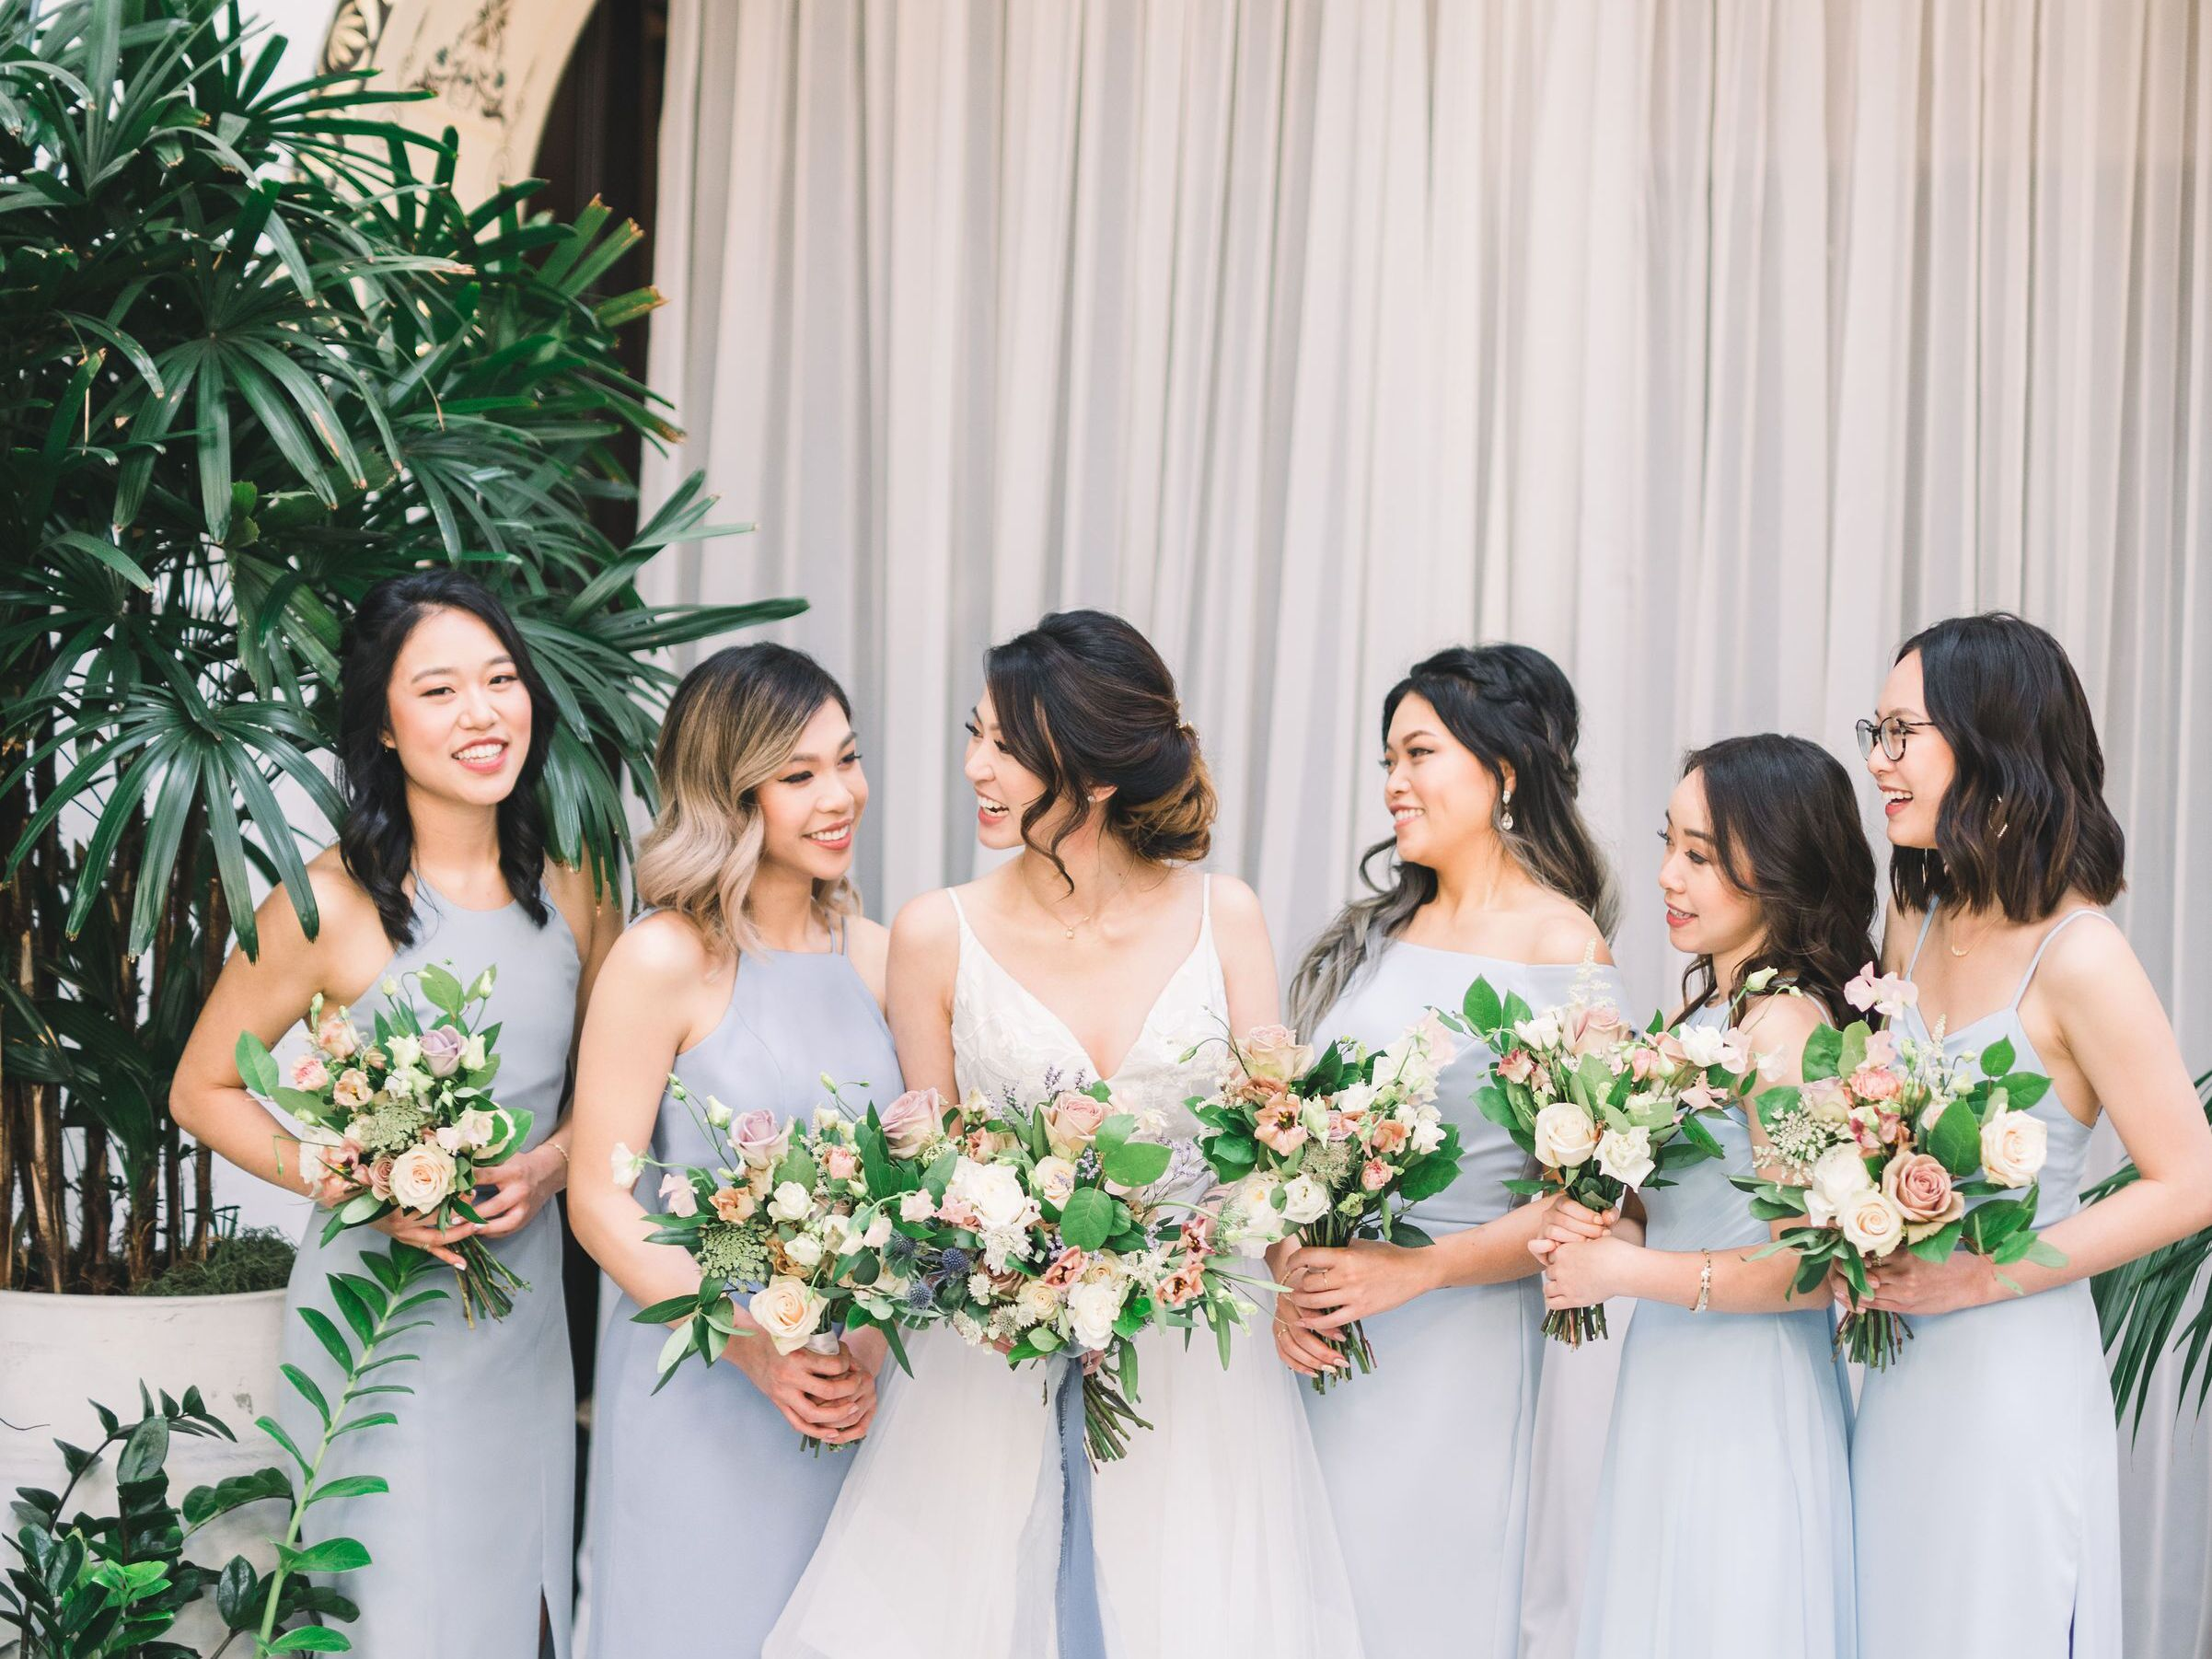 Bridesmaid Dress Shopping Tips: Every Etiquette Rule You Need to Know